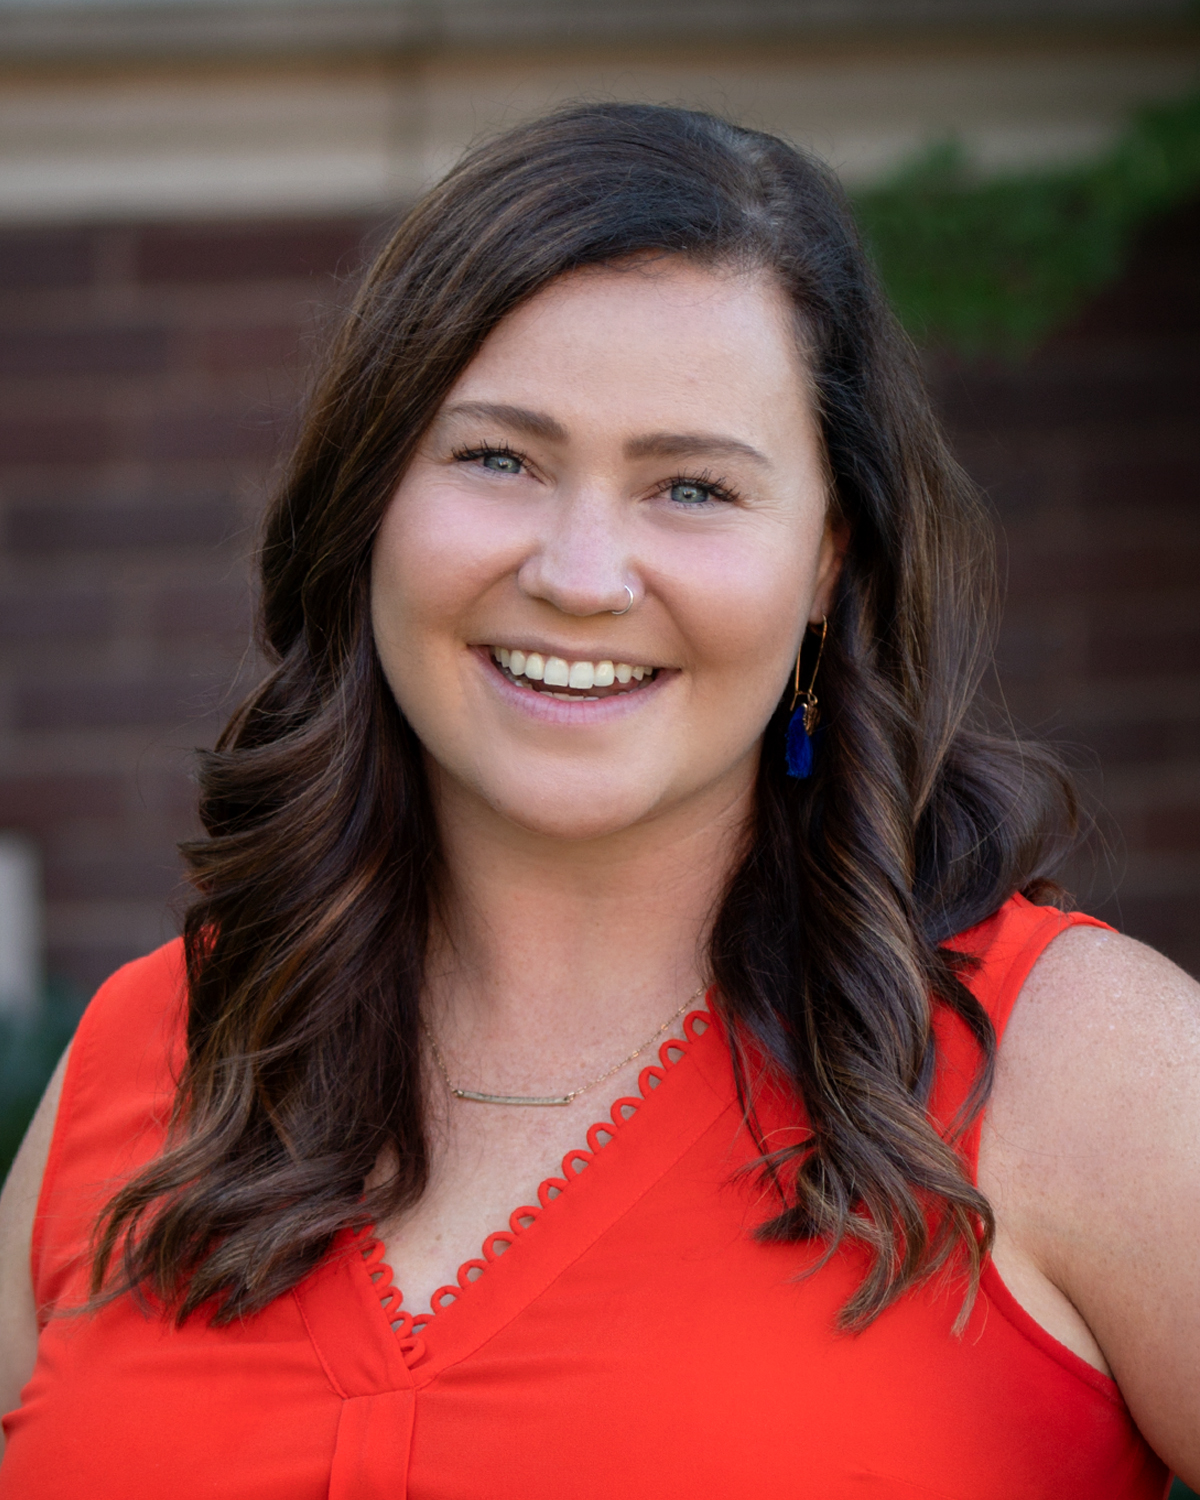 Sydney Montgomery, Admissions Counselor at Boise State